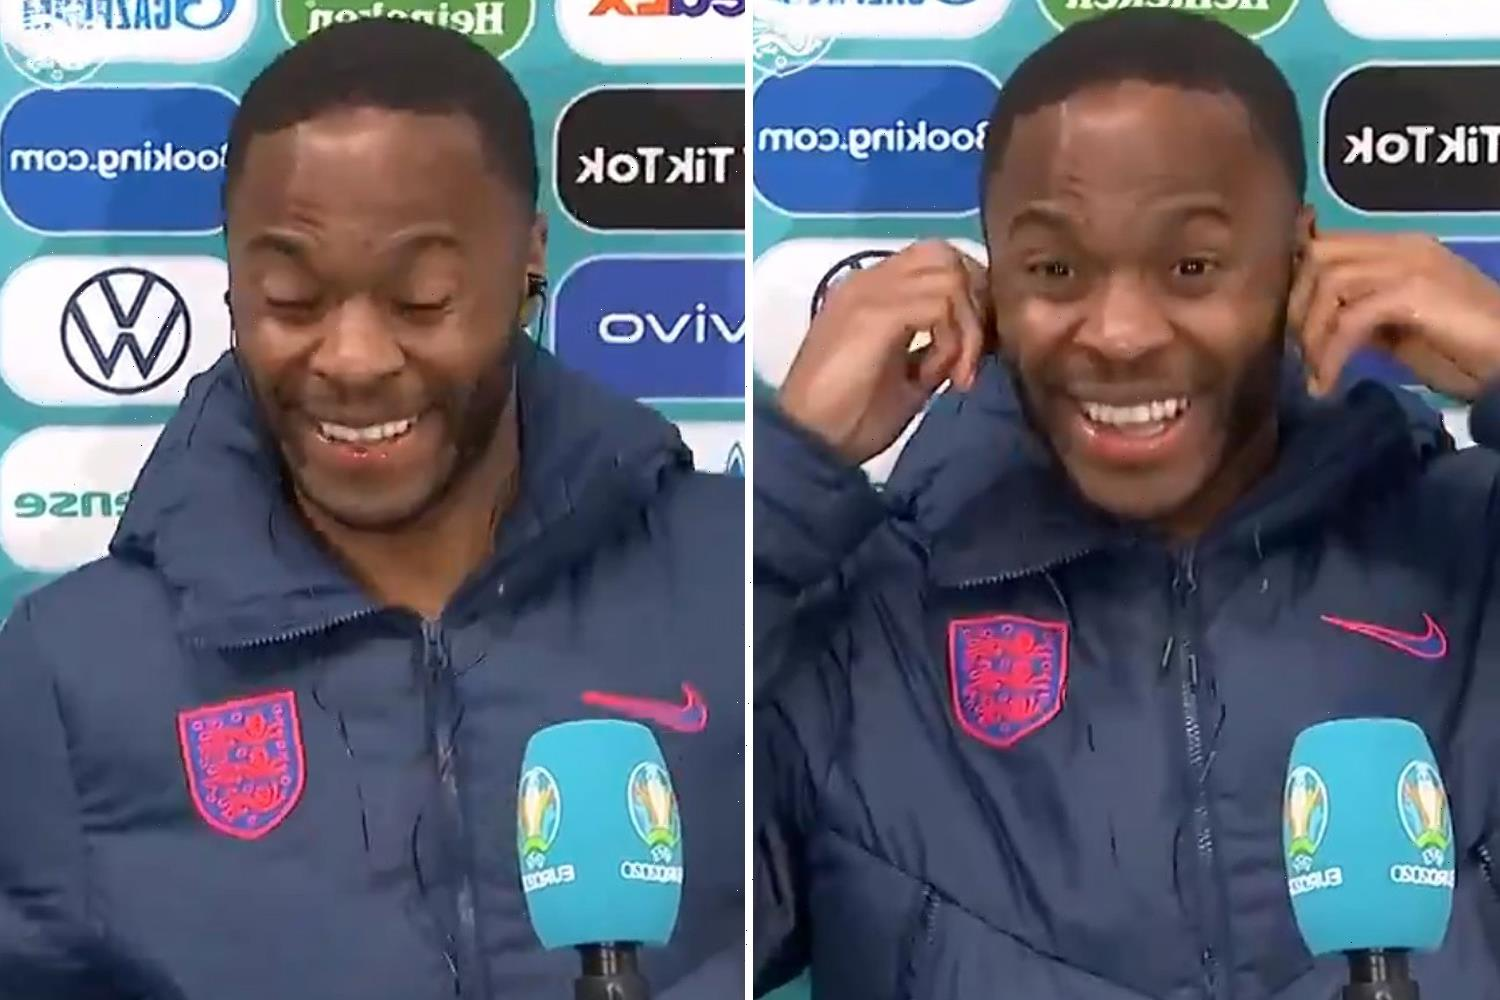 Moment Sterling winces in interview and asks for headphones volume to be turned down after reporter's deafening question